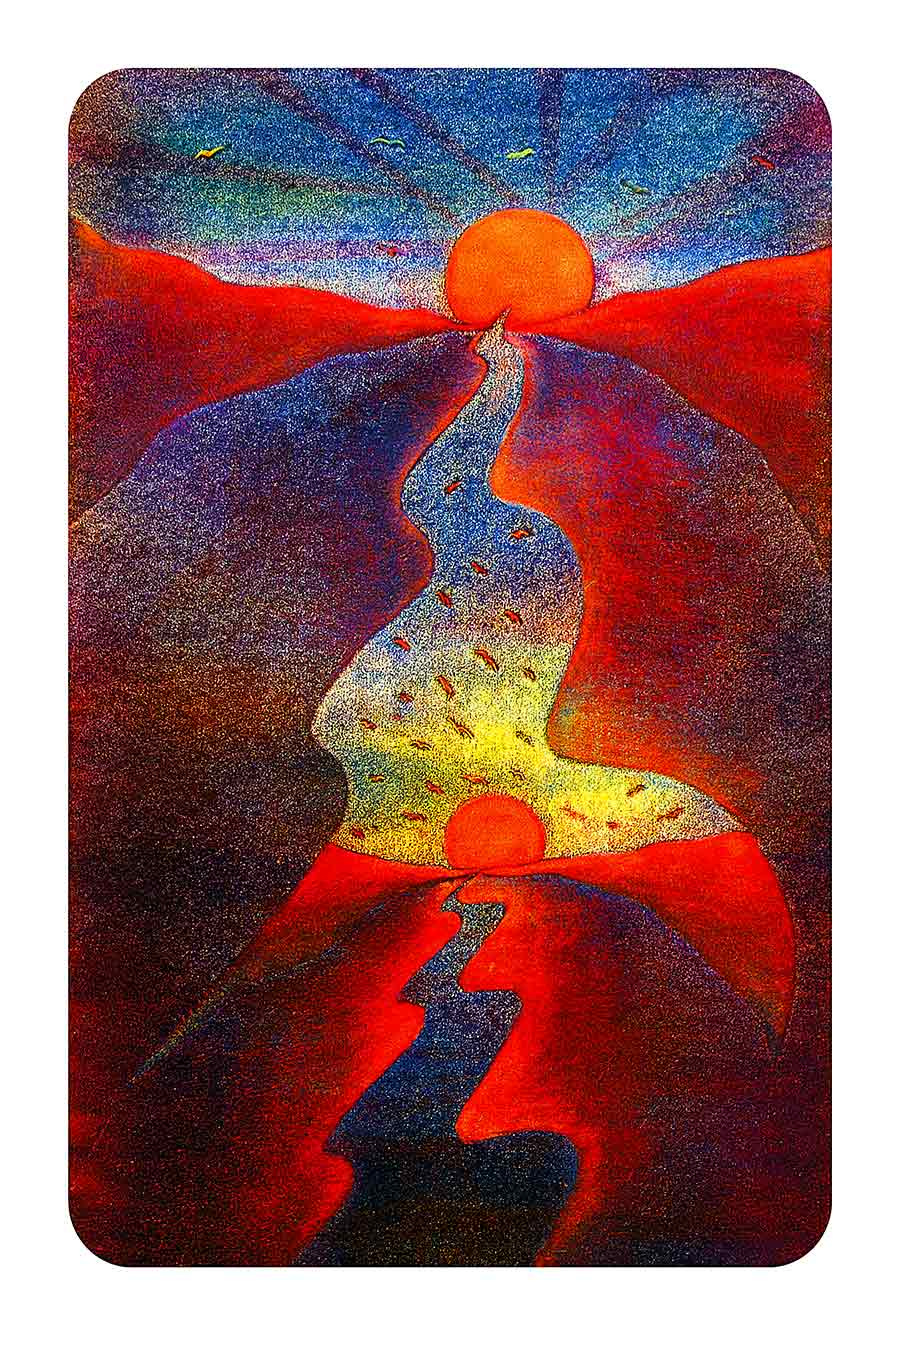 Two Horizons, original Print-Painting and Art Print by Wieslaw Sadurski